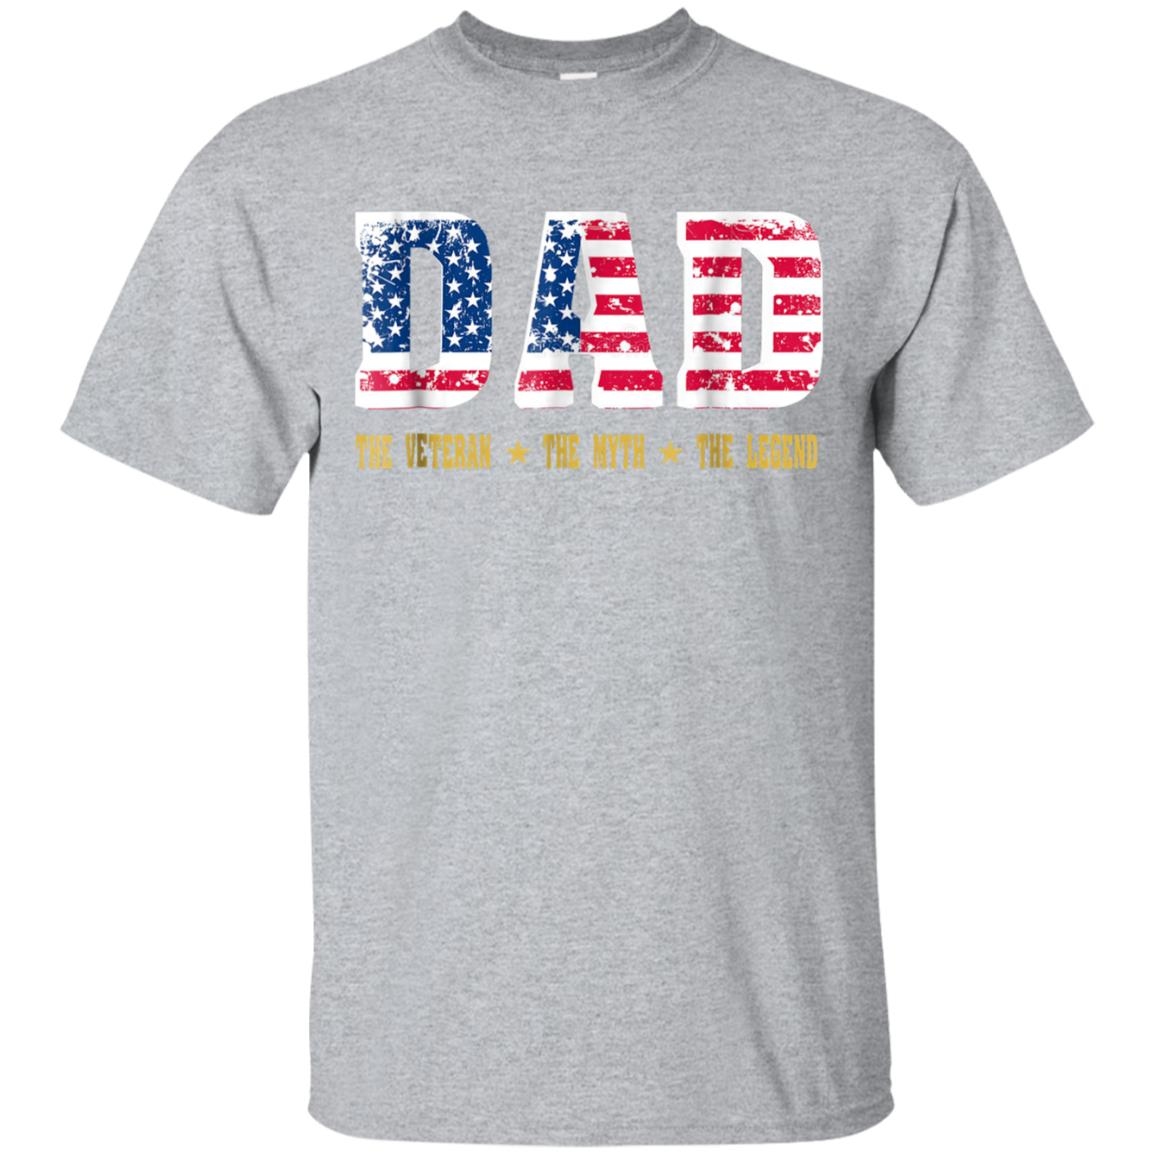 76500b58 Awesome dad the veteran the myth the legend t shirt - 99promocode